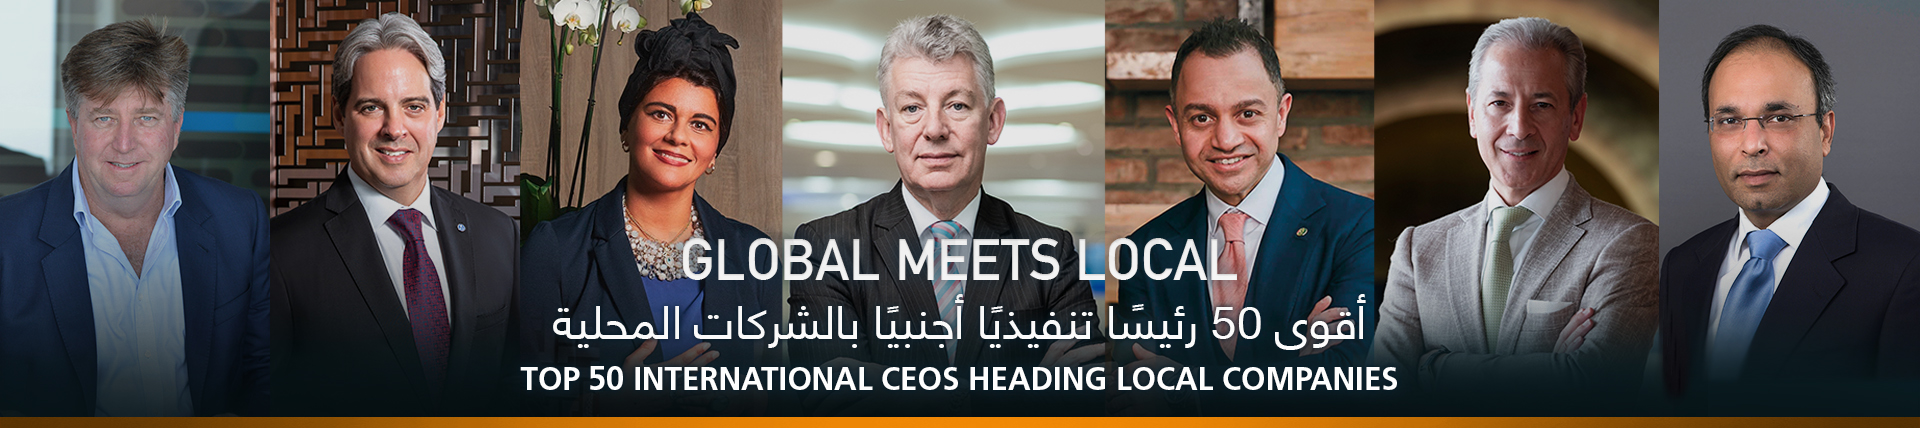 Top 50 International CEOs Heading Local Companies